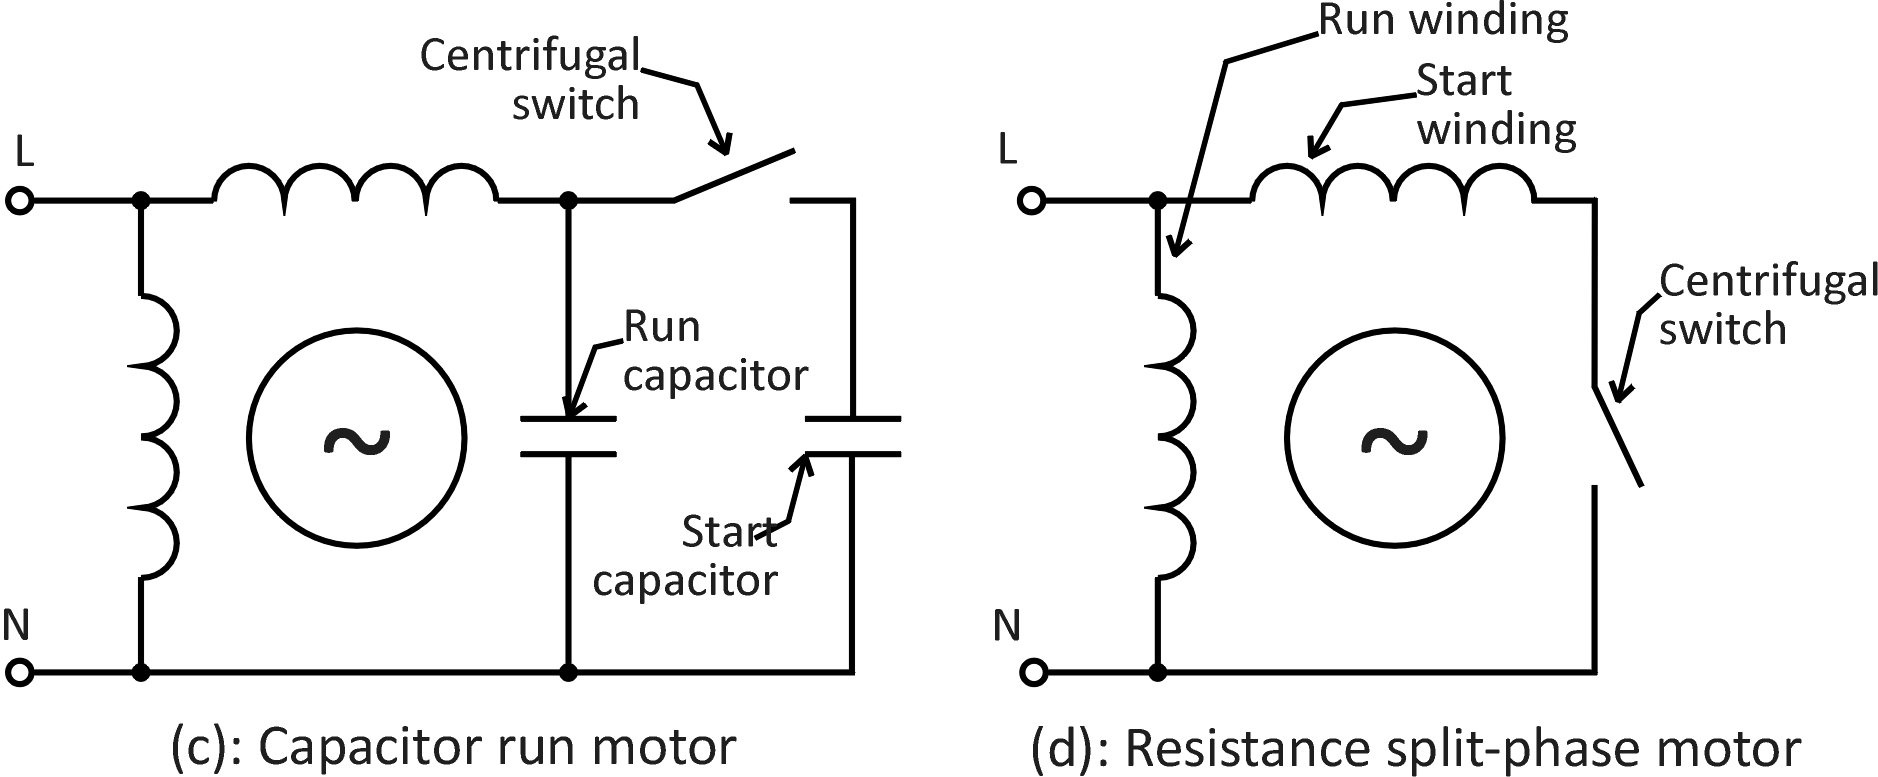 Hard Start Capacitor Wiring Diagram Sizing A Capacitor Hard Start